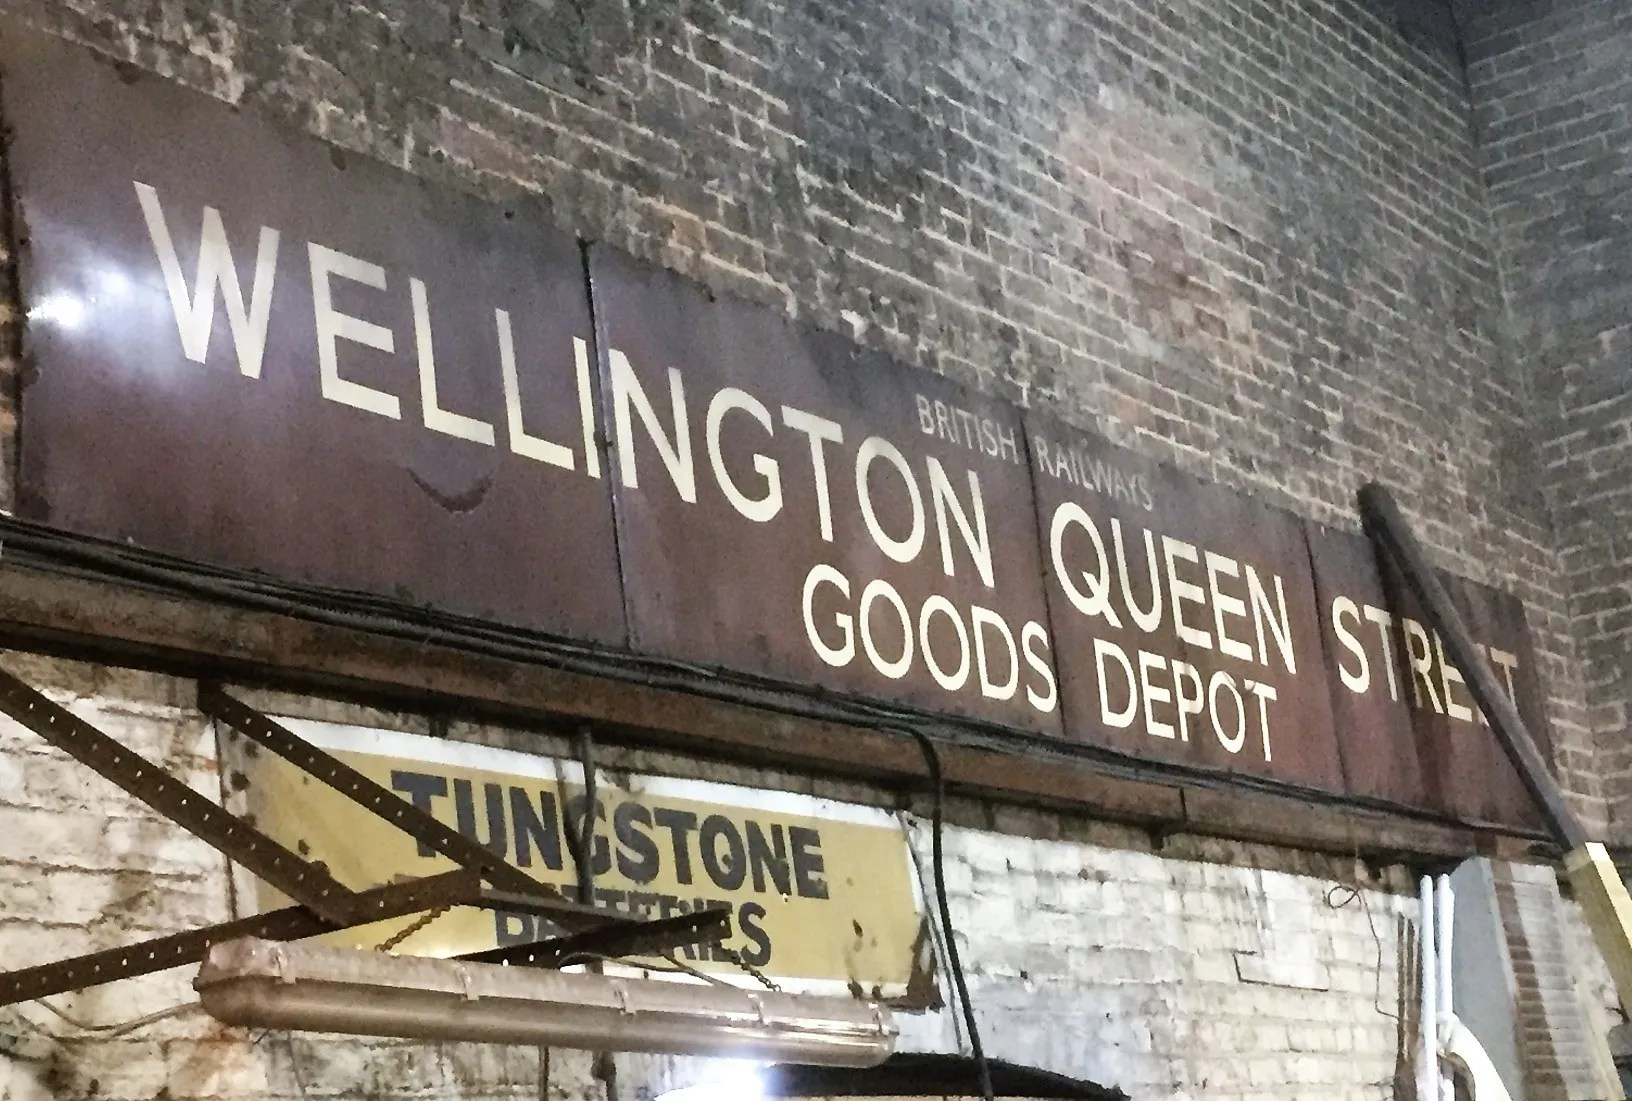 Wellington Queen Street Goods at Telford Steam Railway